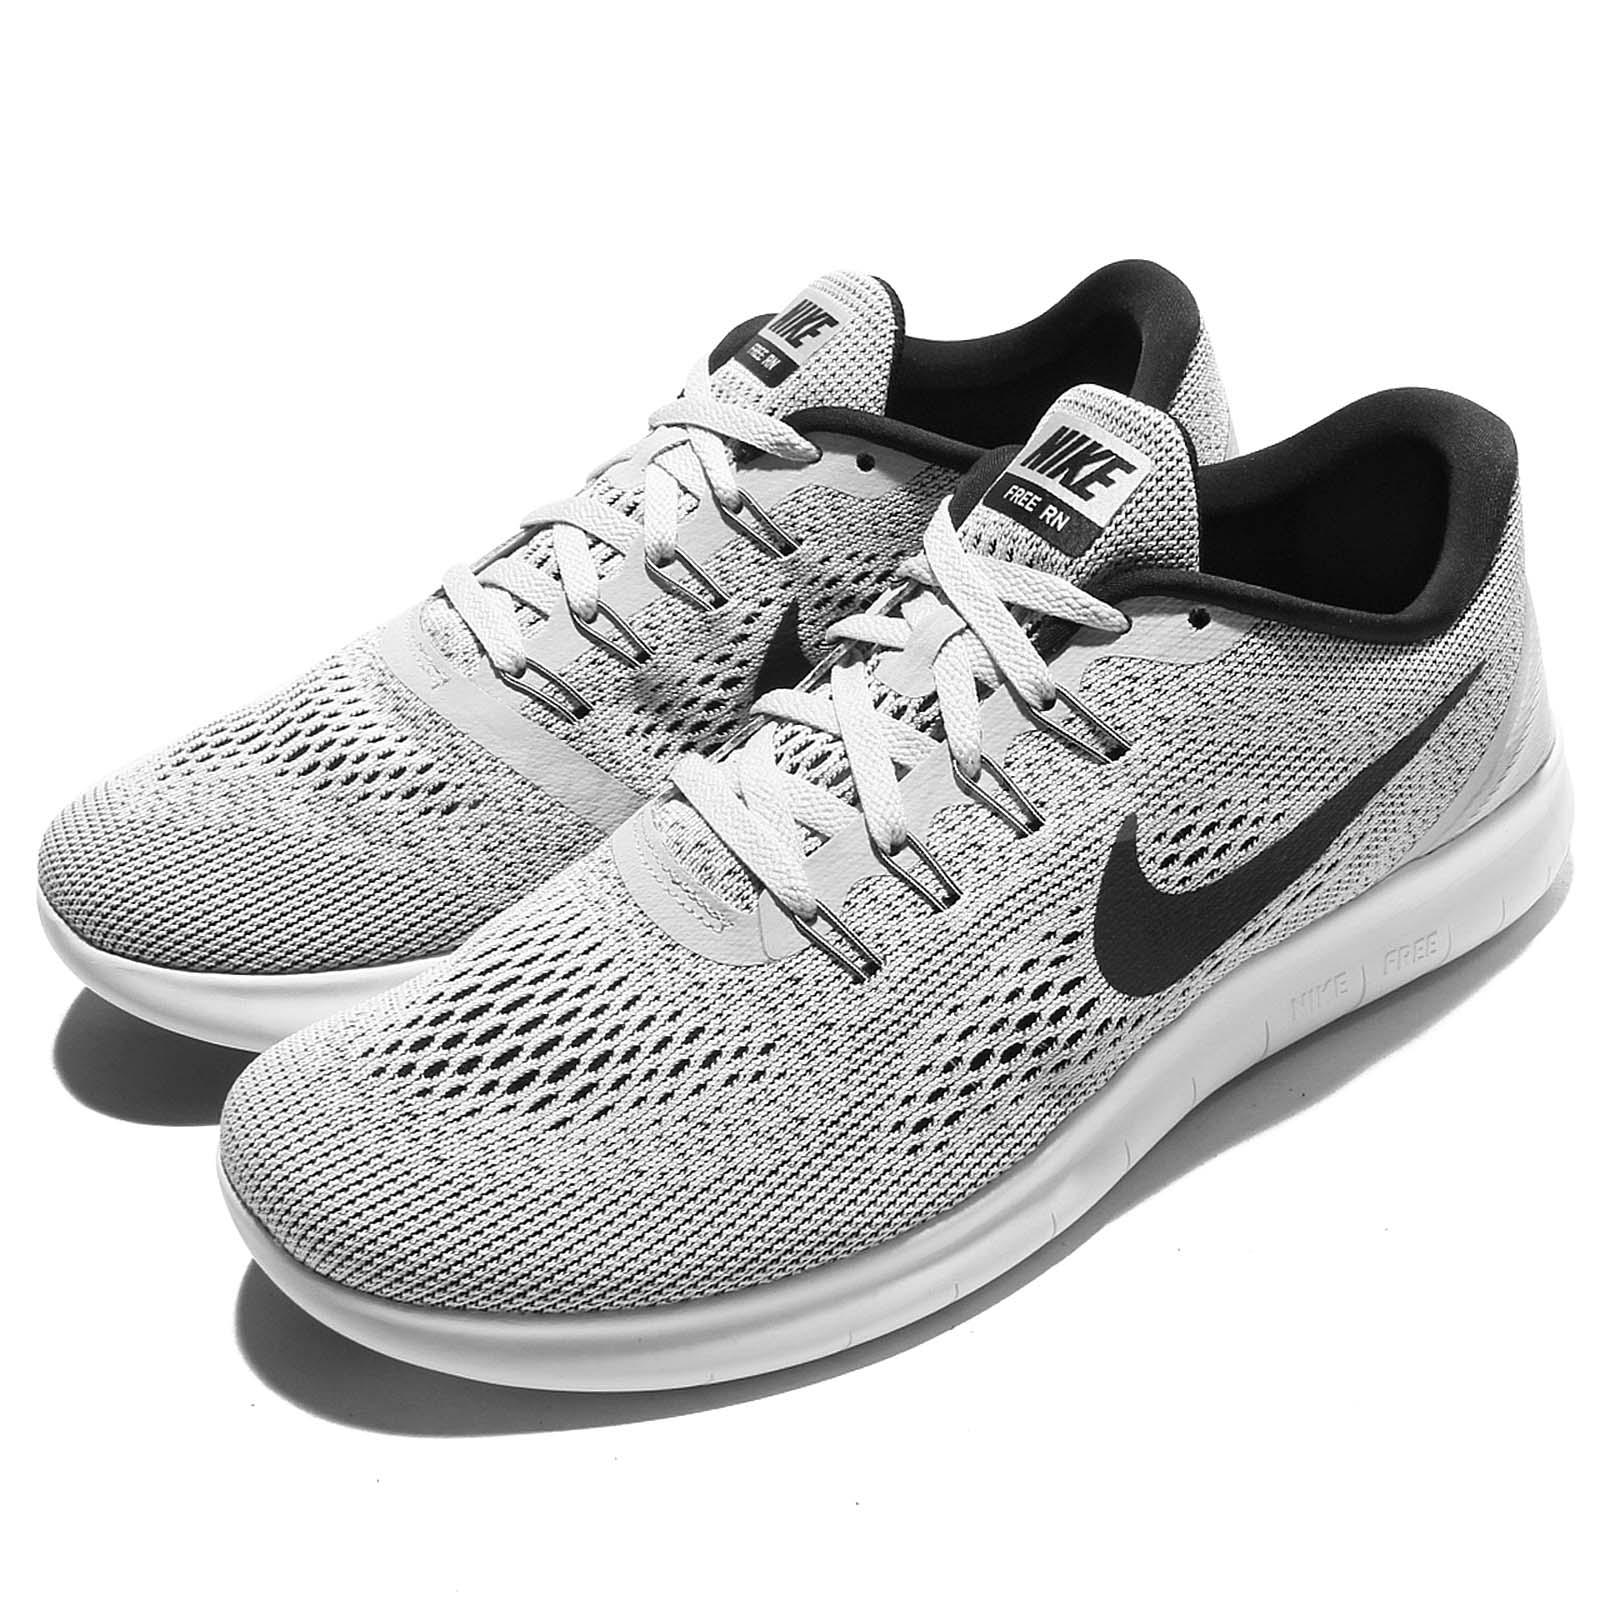 nike free rn run grey black men running shoes sneakers. Black Bedroom Furniture Sets. Home Design Ideas